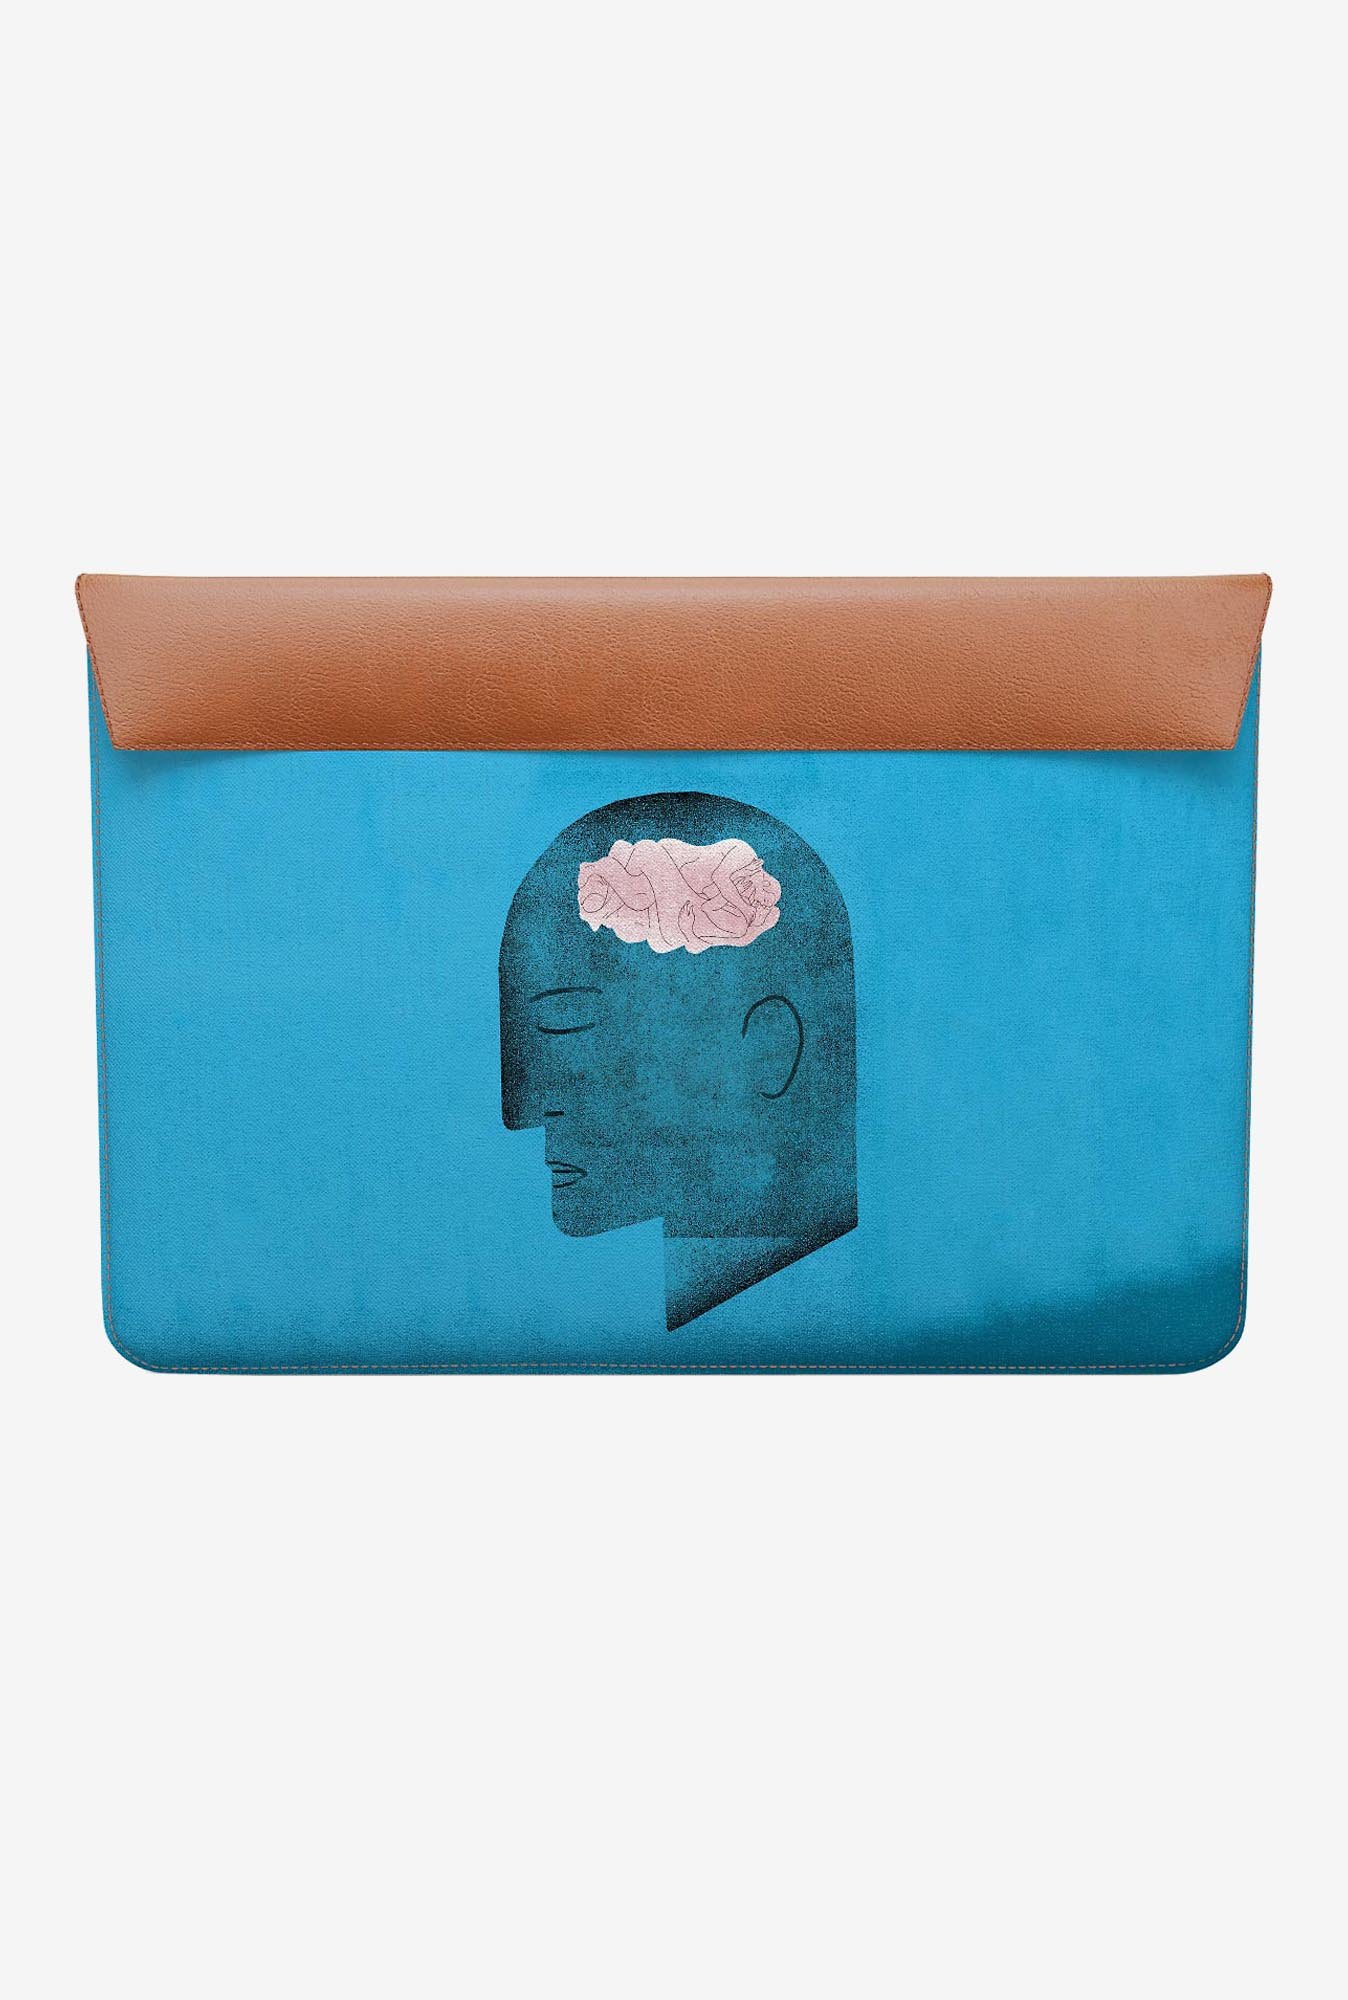 DailyObjects One Track Mind MacBook Air 11 Envelope Sleeve